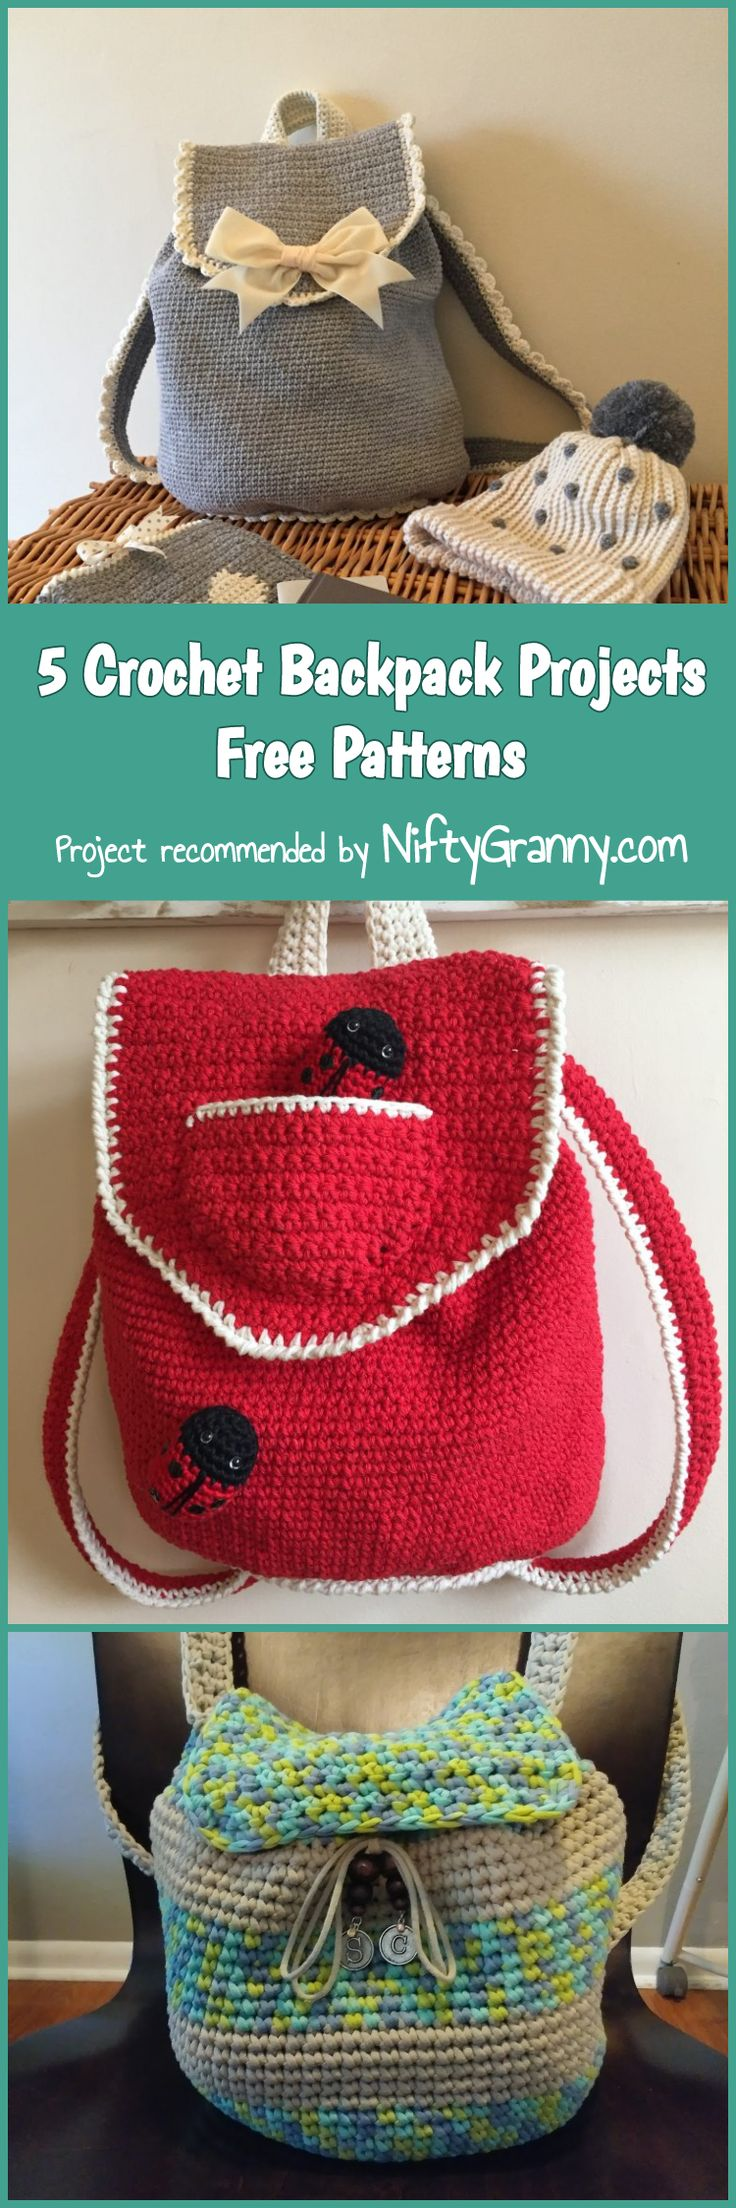 18242 Best Crochet Images On Pinterest Knit Filet Tm Diagram Ideas And Tips Juxtapost 5 Backpack Projects Free Patterns